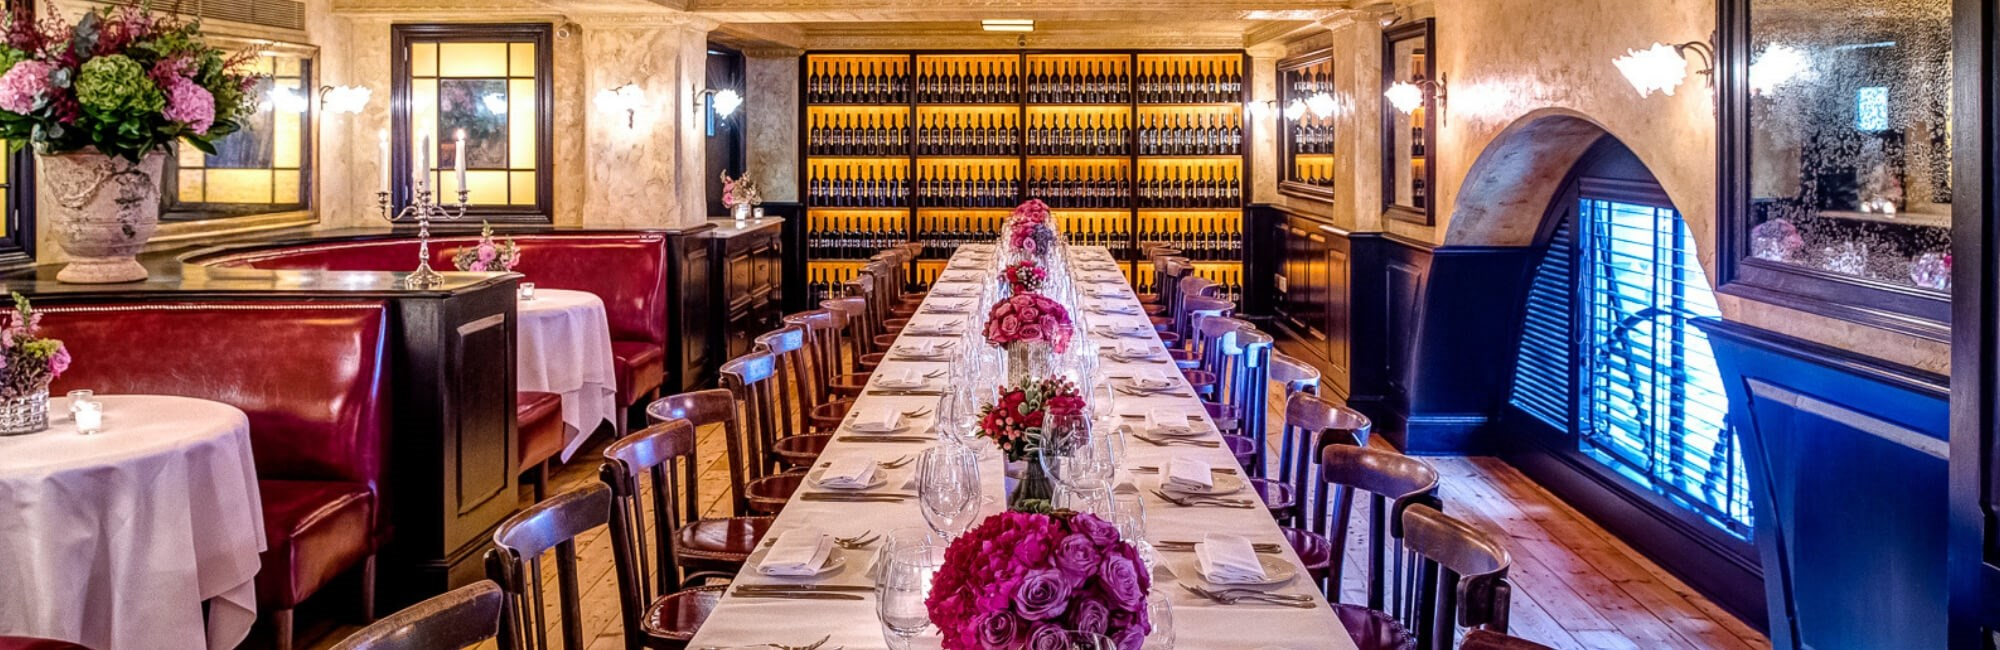 The Private Dining Room at Balthazar in Covent Garden is ideal for anniversary or birthday party